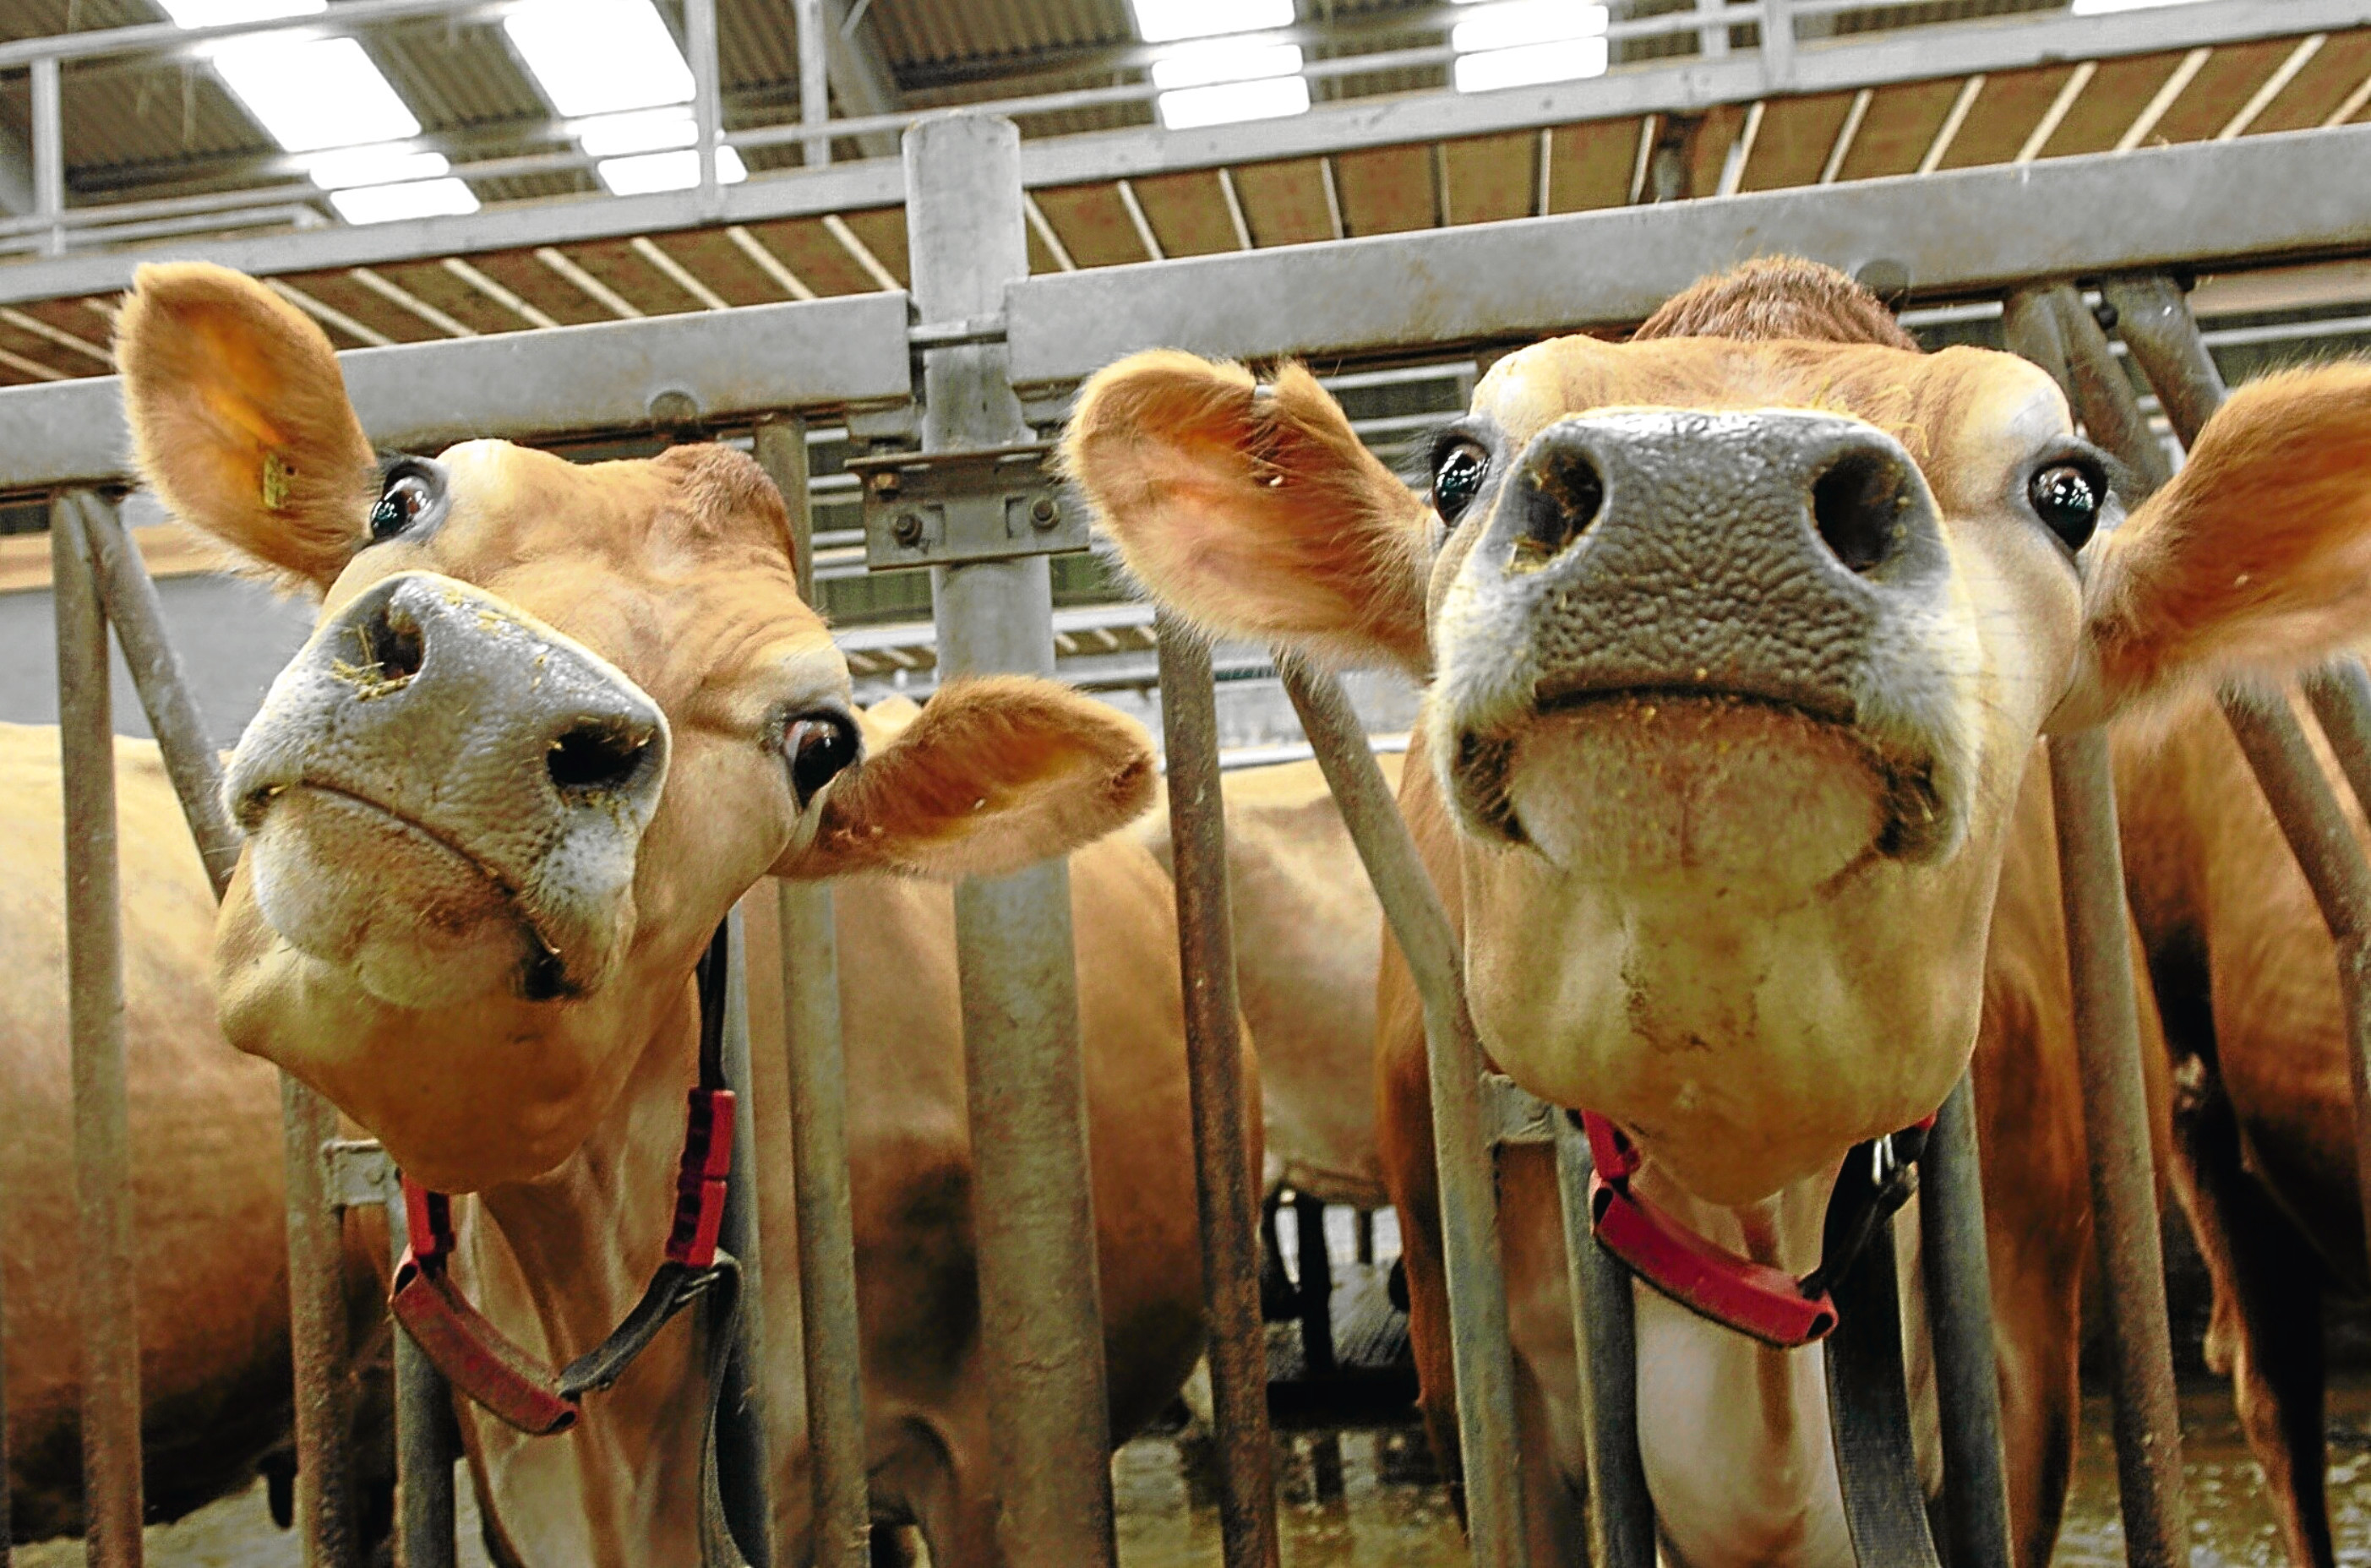 Devenick Dairy hopes to raise £15,000 to buy 10 new Jersey cows.